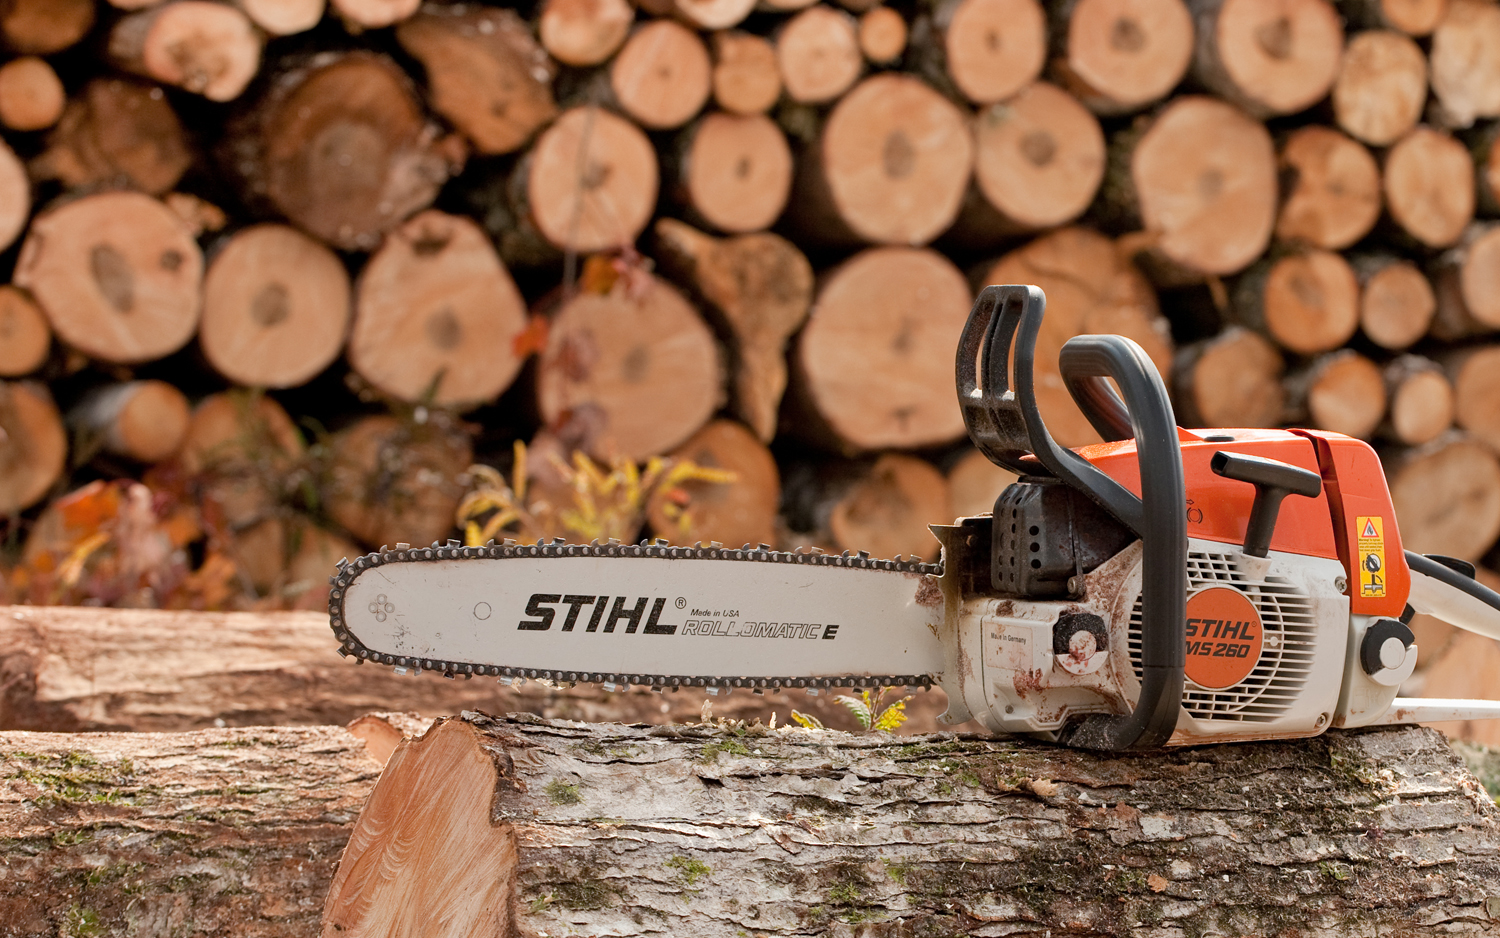 Best STIHL Chainsaws 2019 - Electric, Gas, Battery-Powered